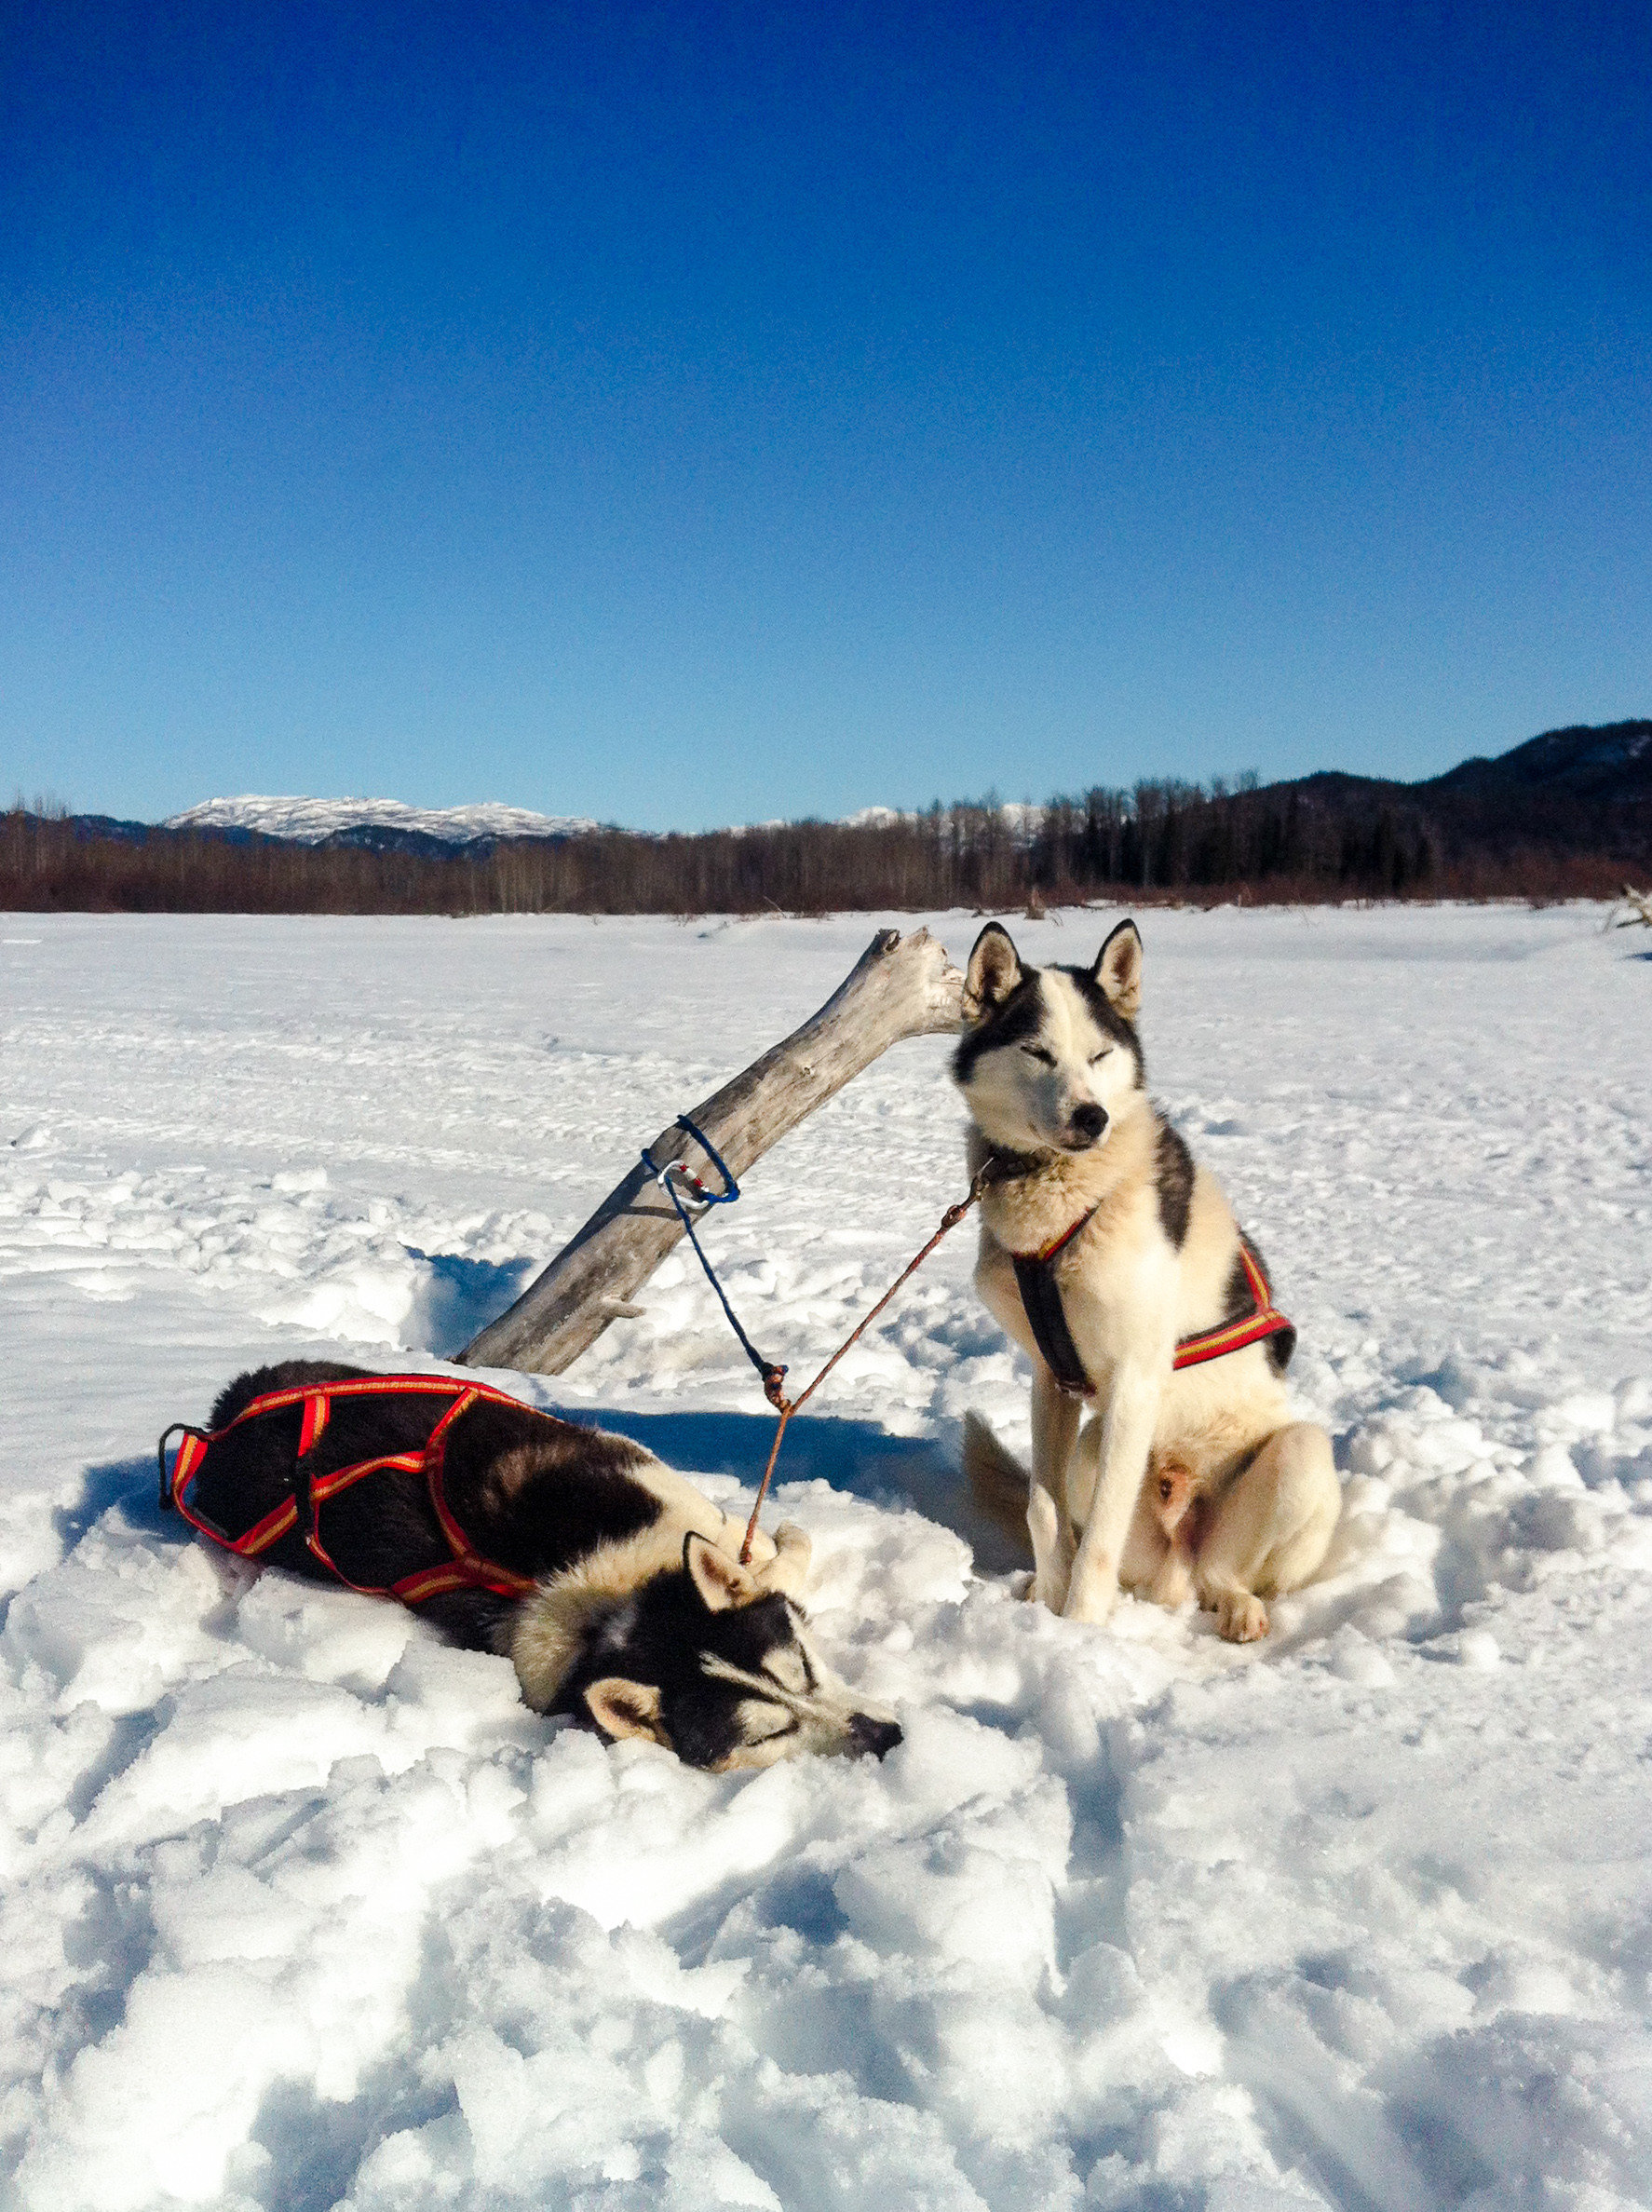 snow Dog dog like mammal Winter arctic sled dog racing mushing sky vacation ice leash sled dog siberian husky freezing Adventure glacial landform fun dog sled greenland dog dog breed